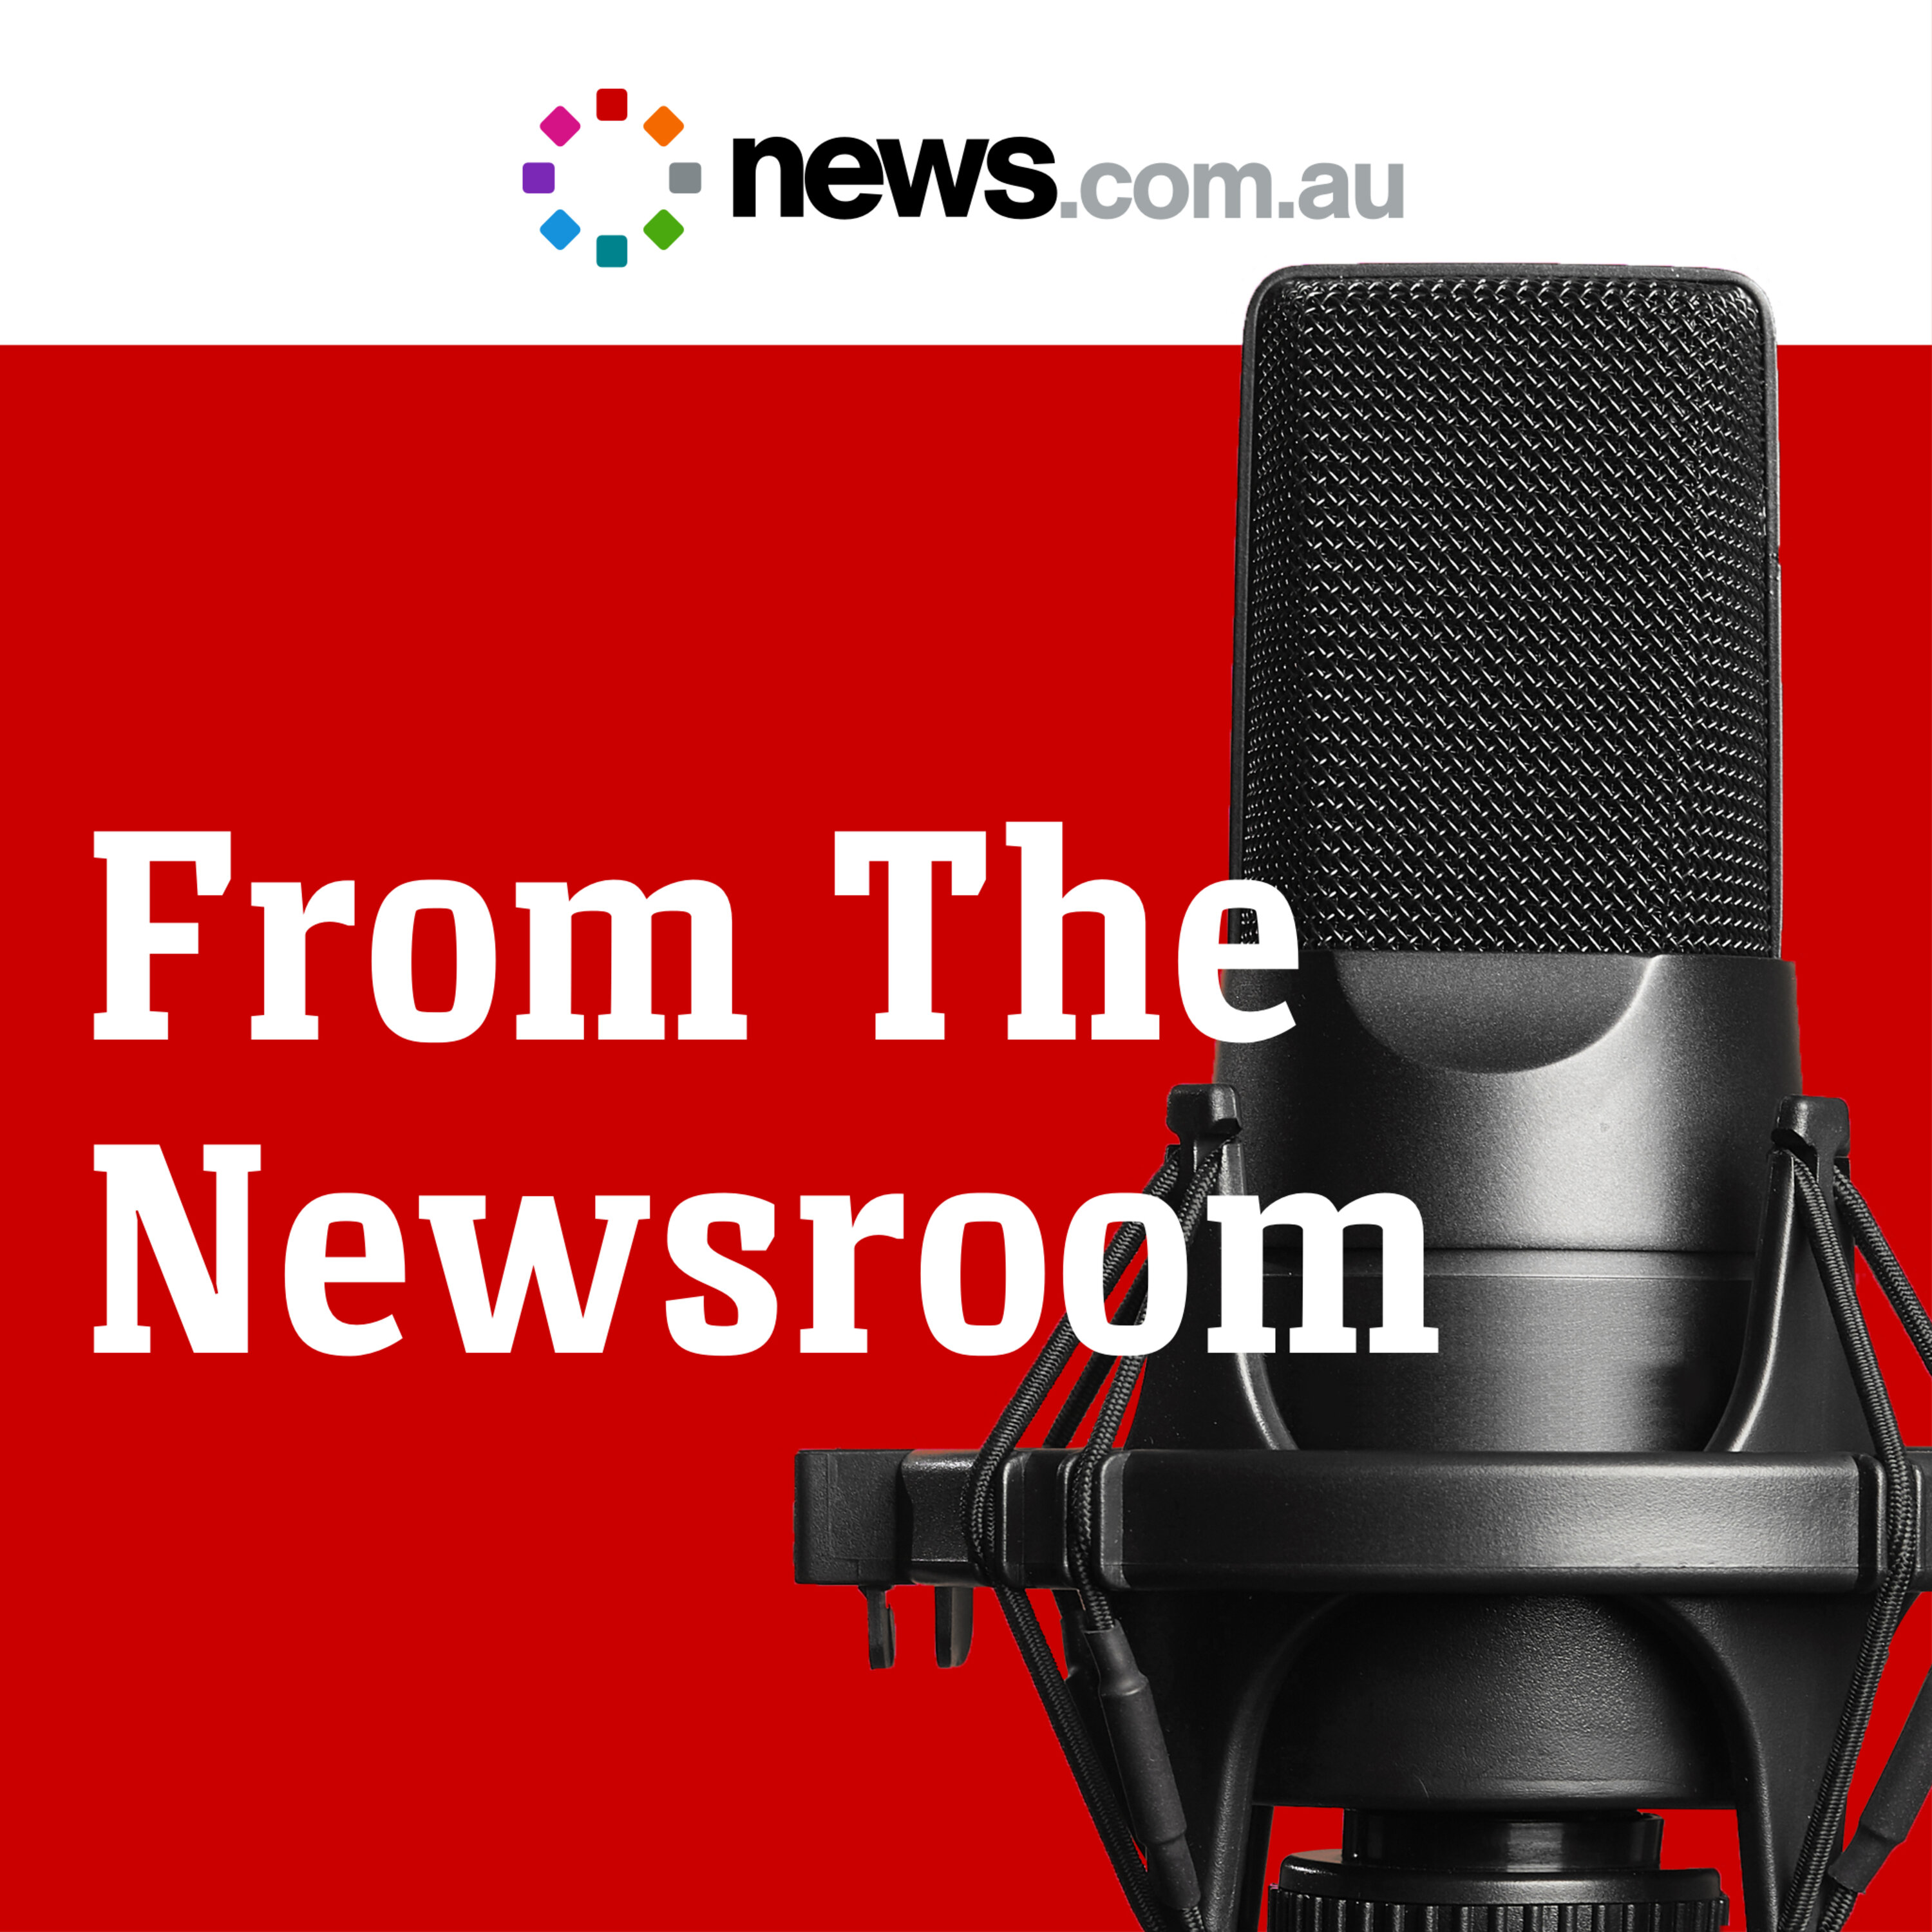 Victoria Set To Ease COVID Lockdown Restrictions 09/06/21